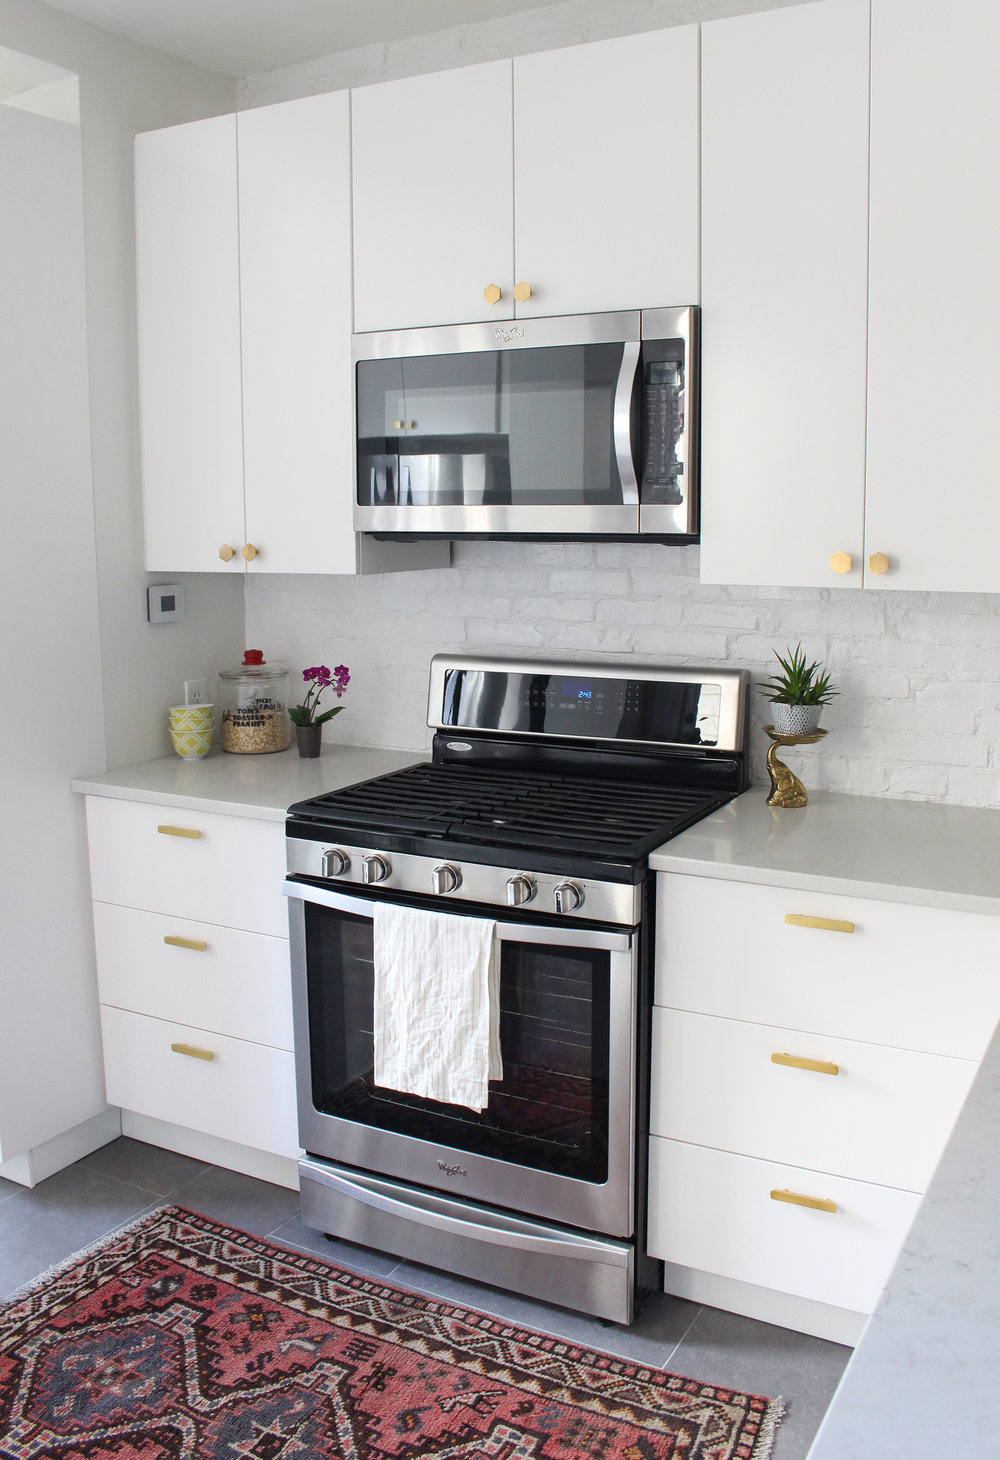 Before & After: Our Kitchen Renovation